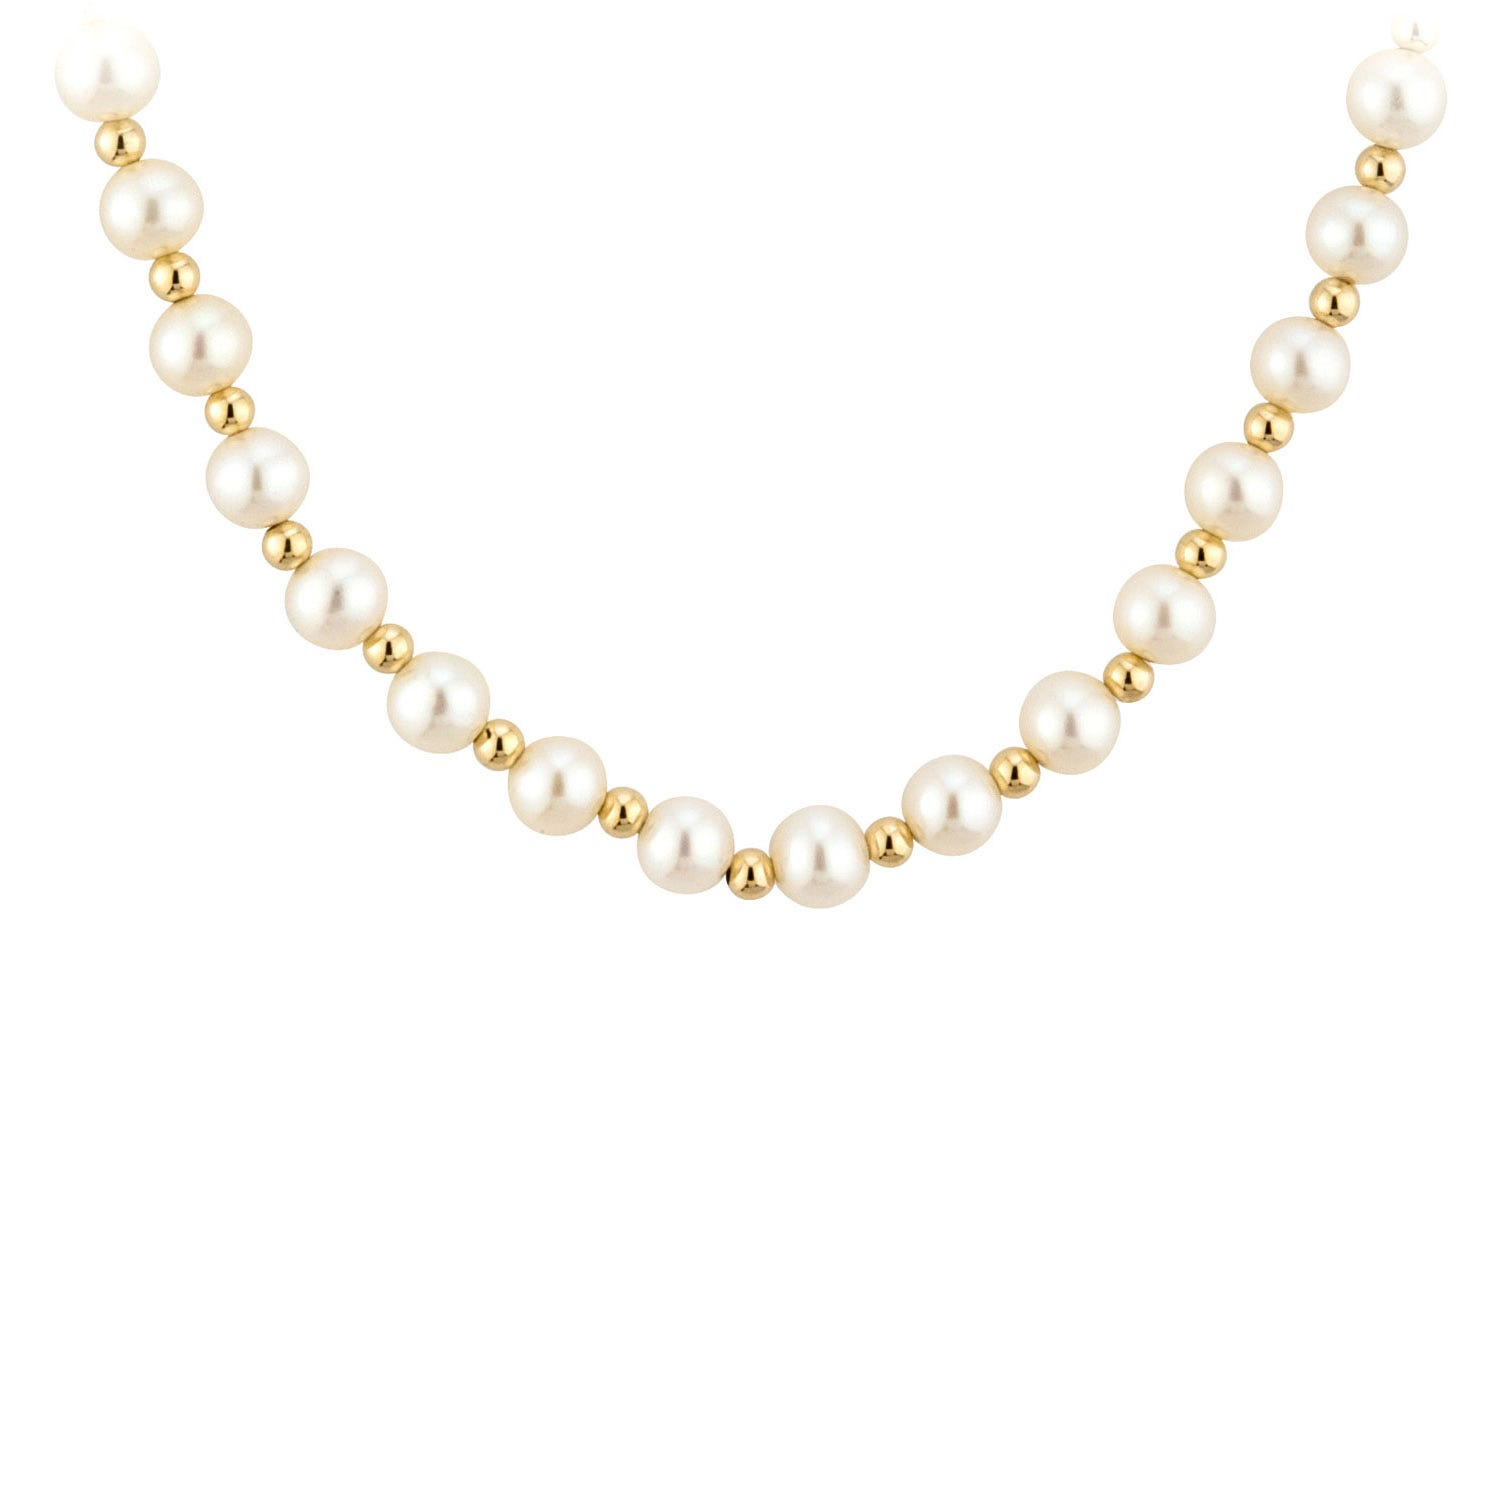 9ct gold freshwater cultured pearl and bead necklace